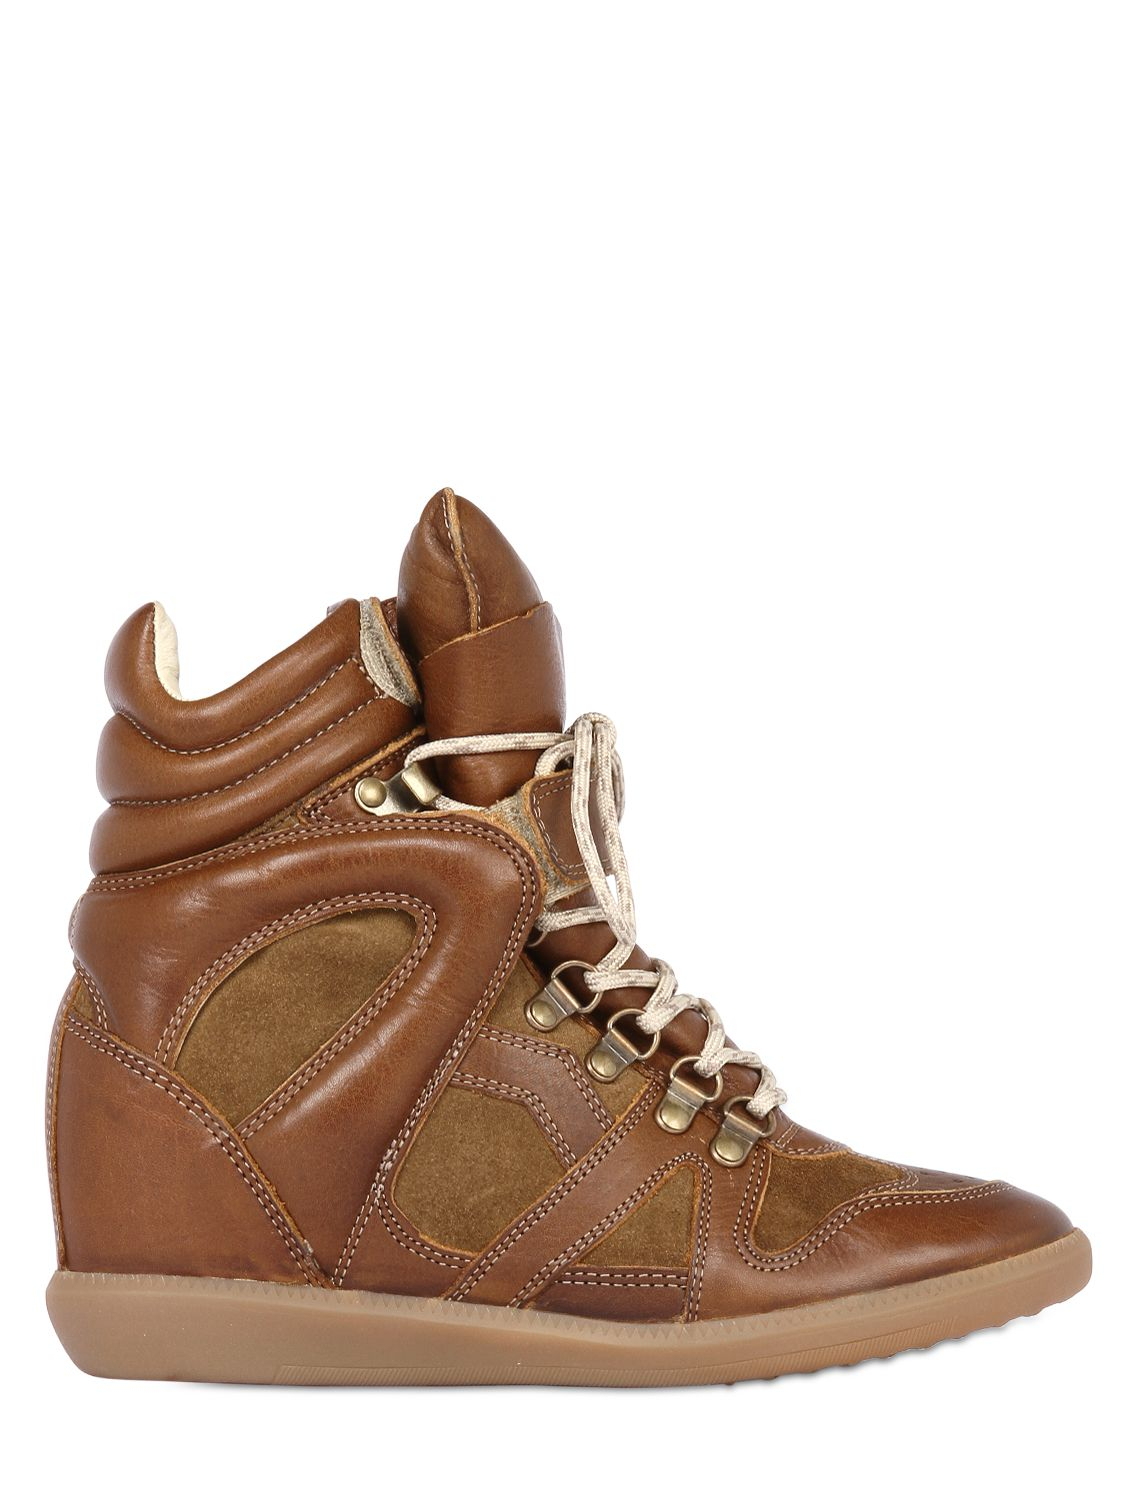 isabel marant 39 buck 39 sneakers in brown lyst. Black Bedroom Furniture Sets. Home Design Ideas